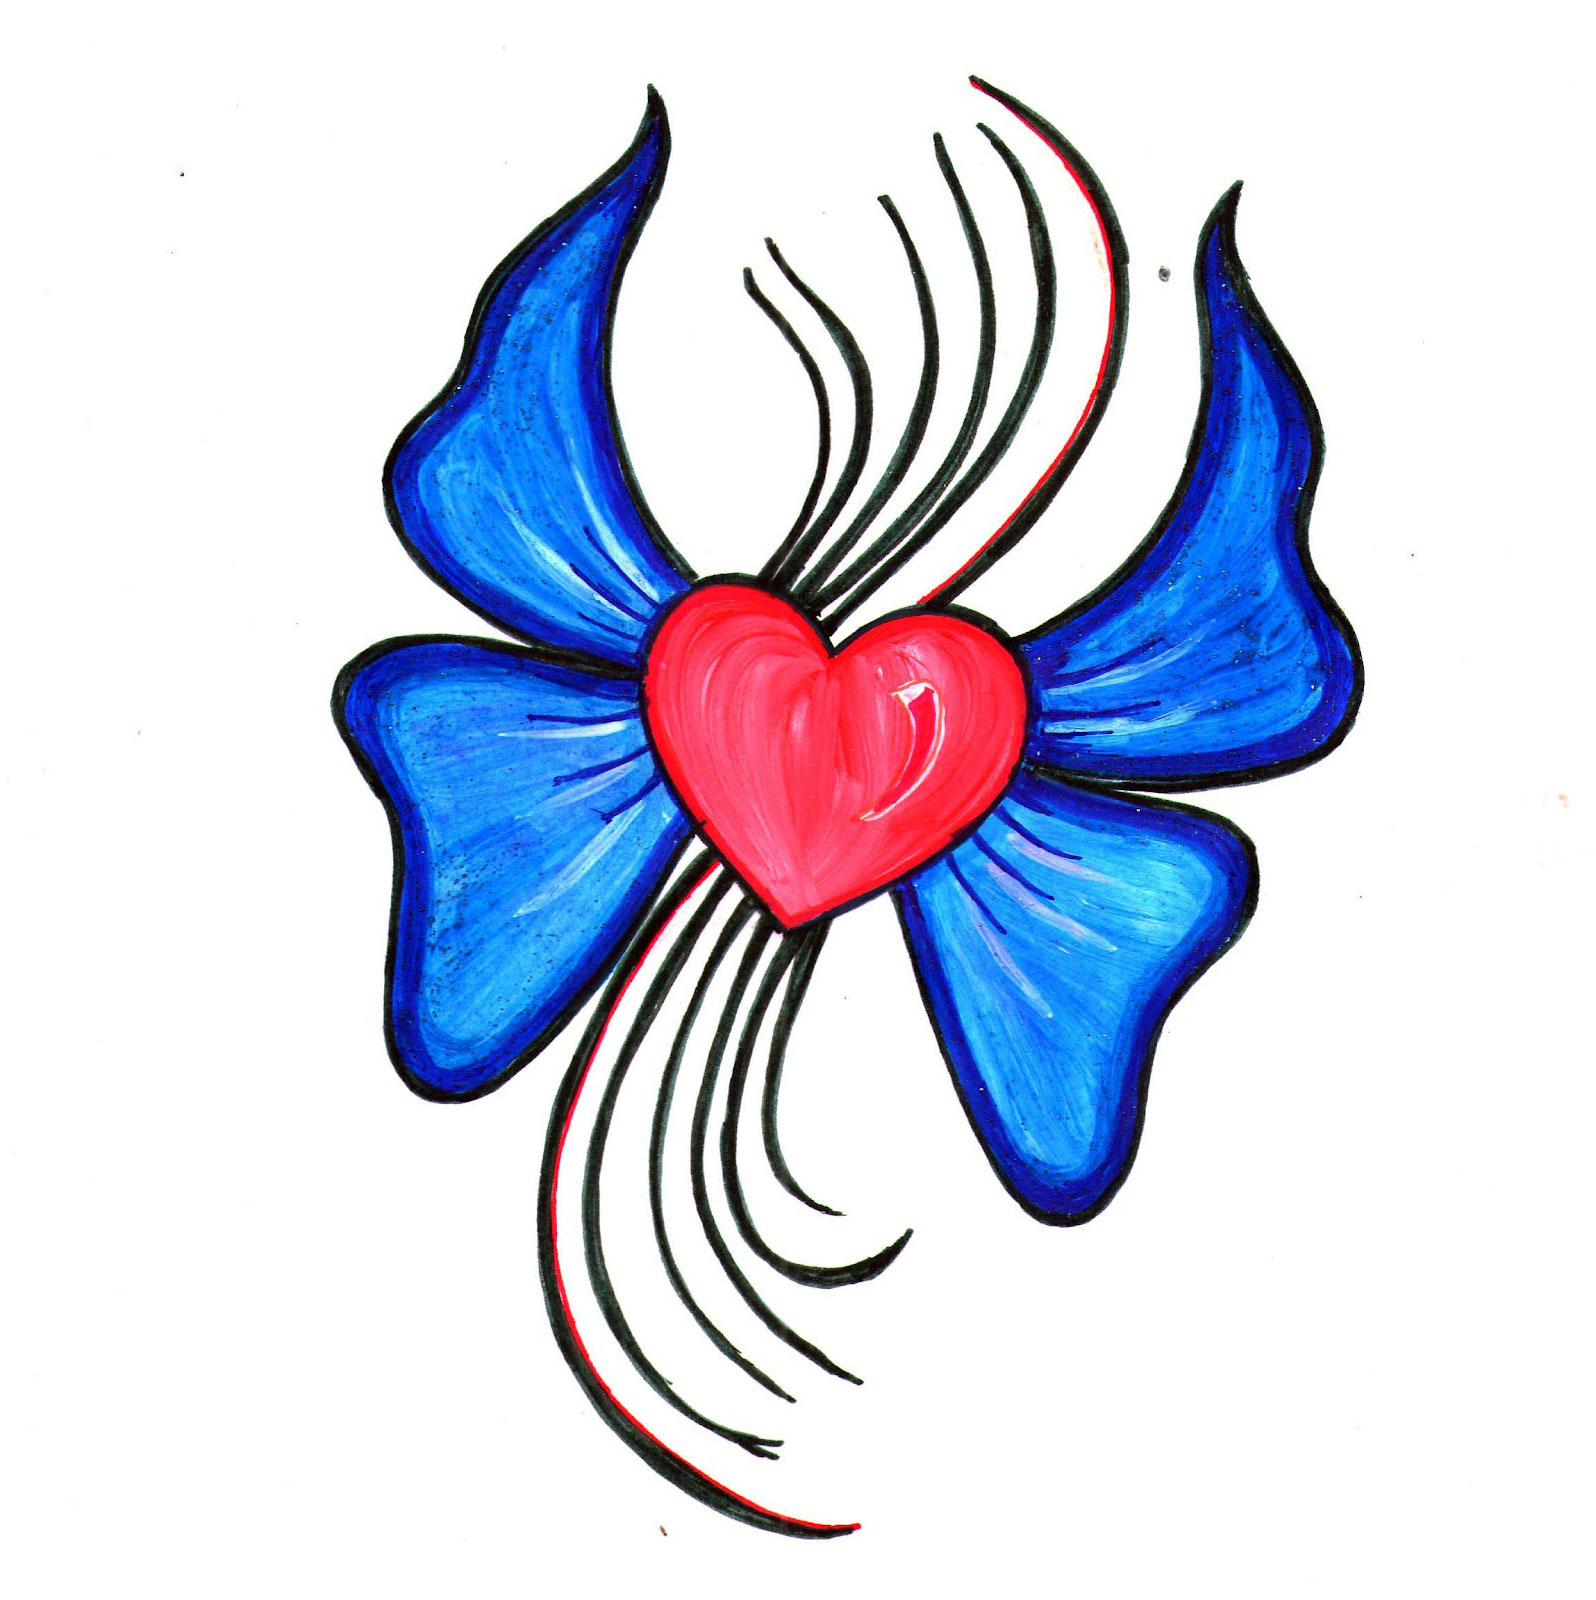 13 easy to draw heart designs images tribal heart tattoo